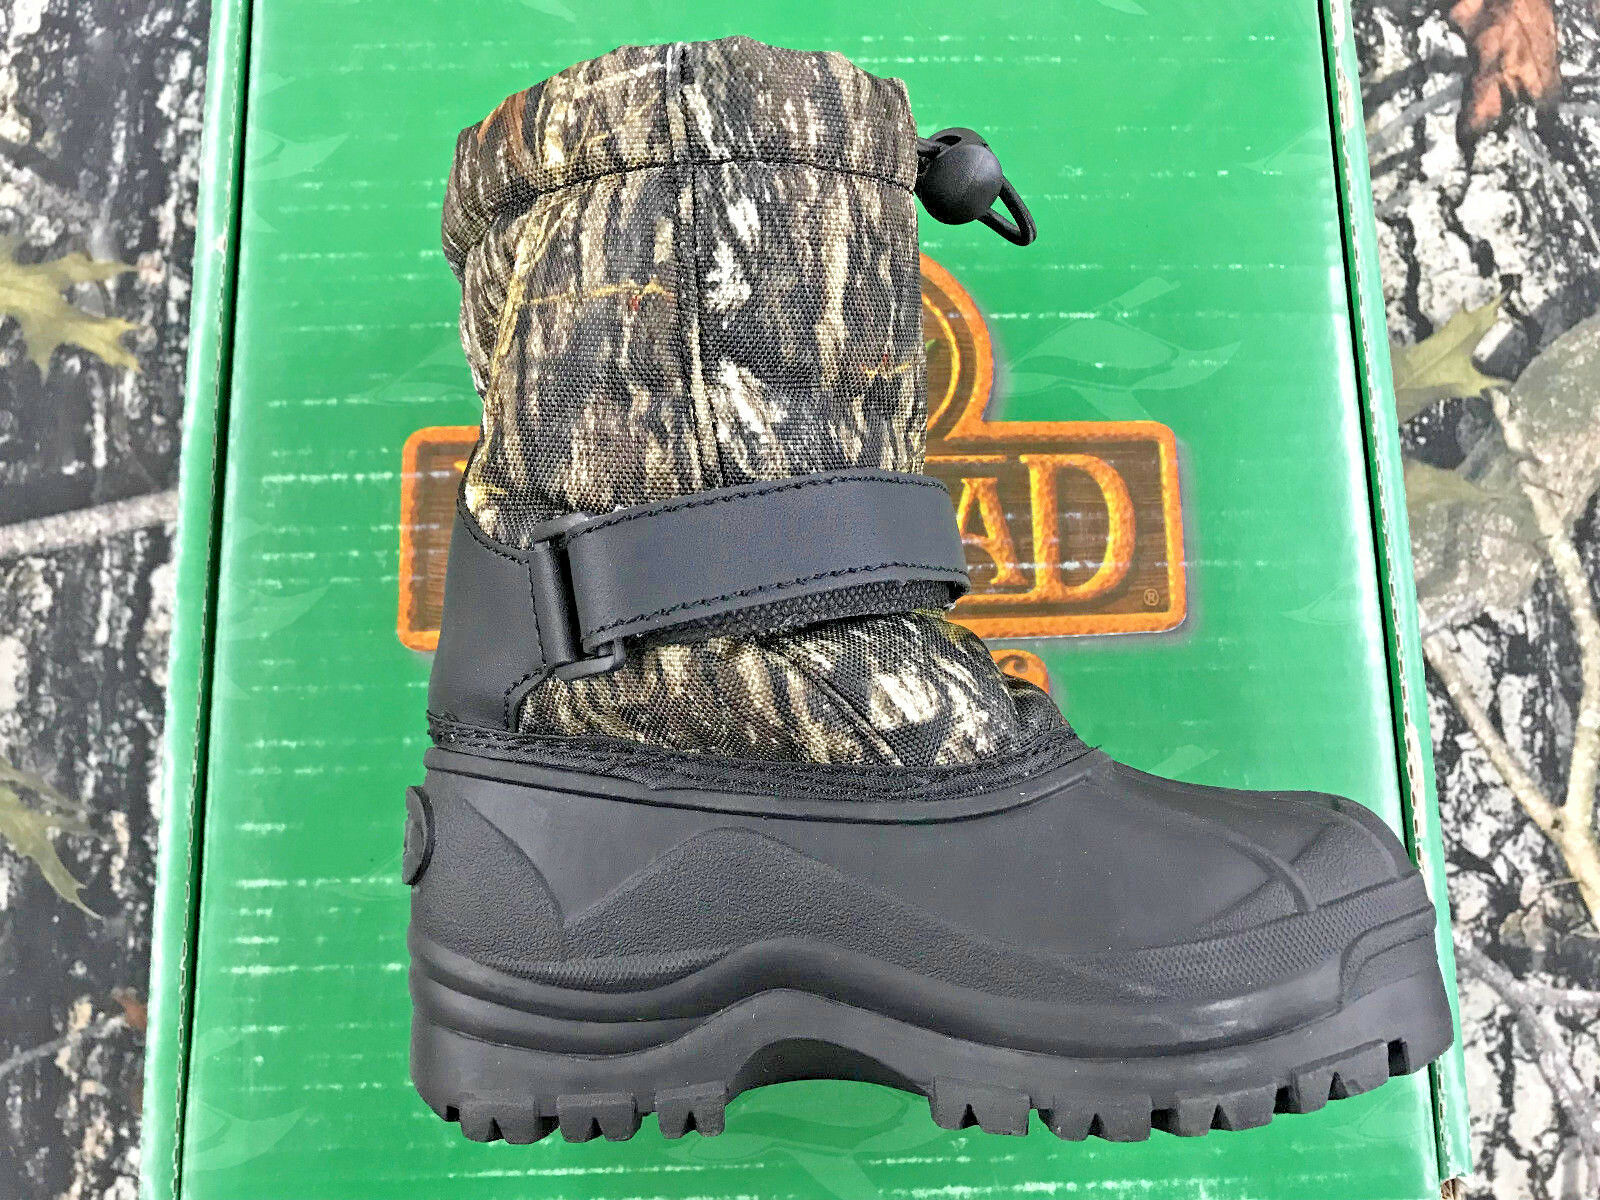 RED HEAD  SNOWBOARD BOOTS - KID'S - SIZE 9 -  100% free shipping